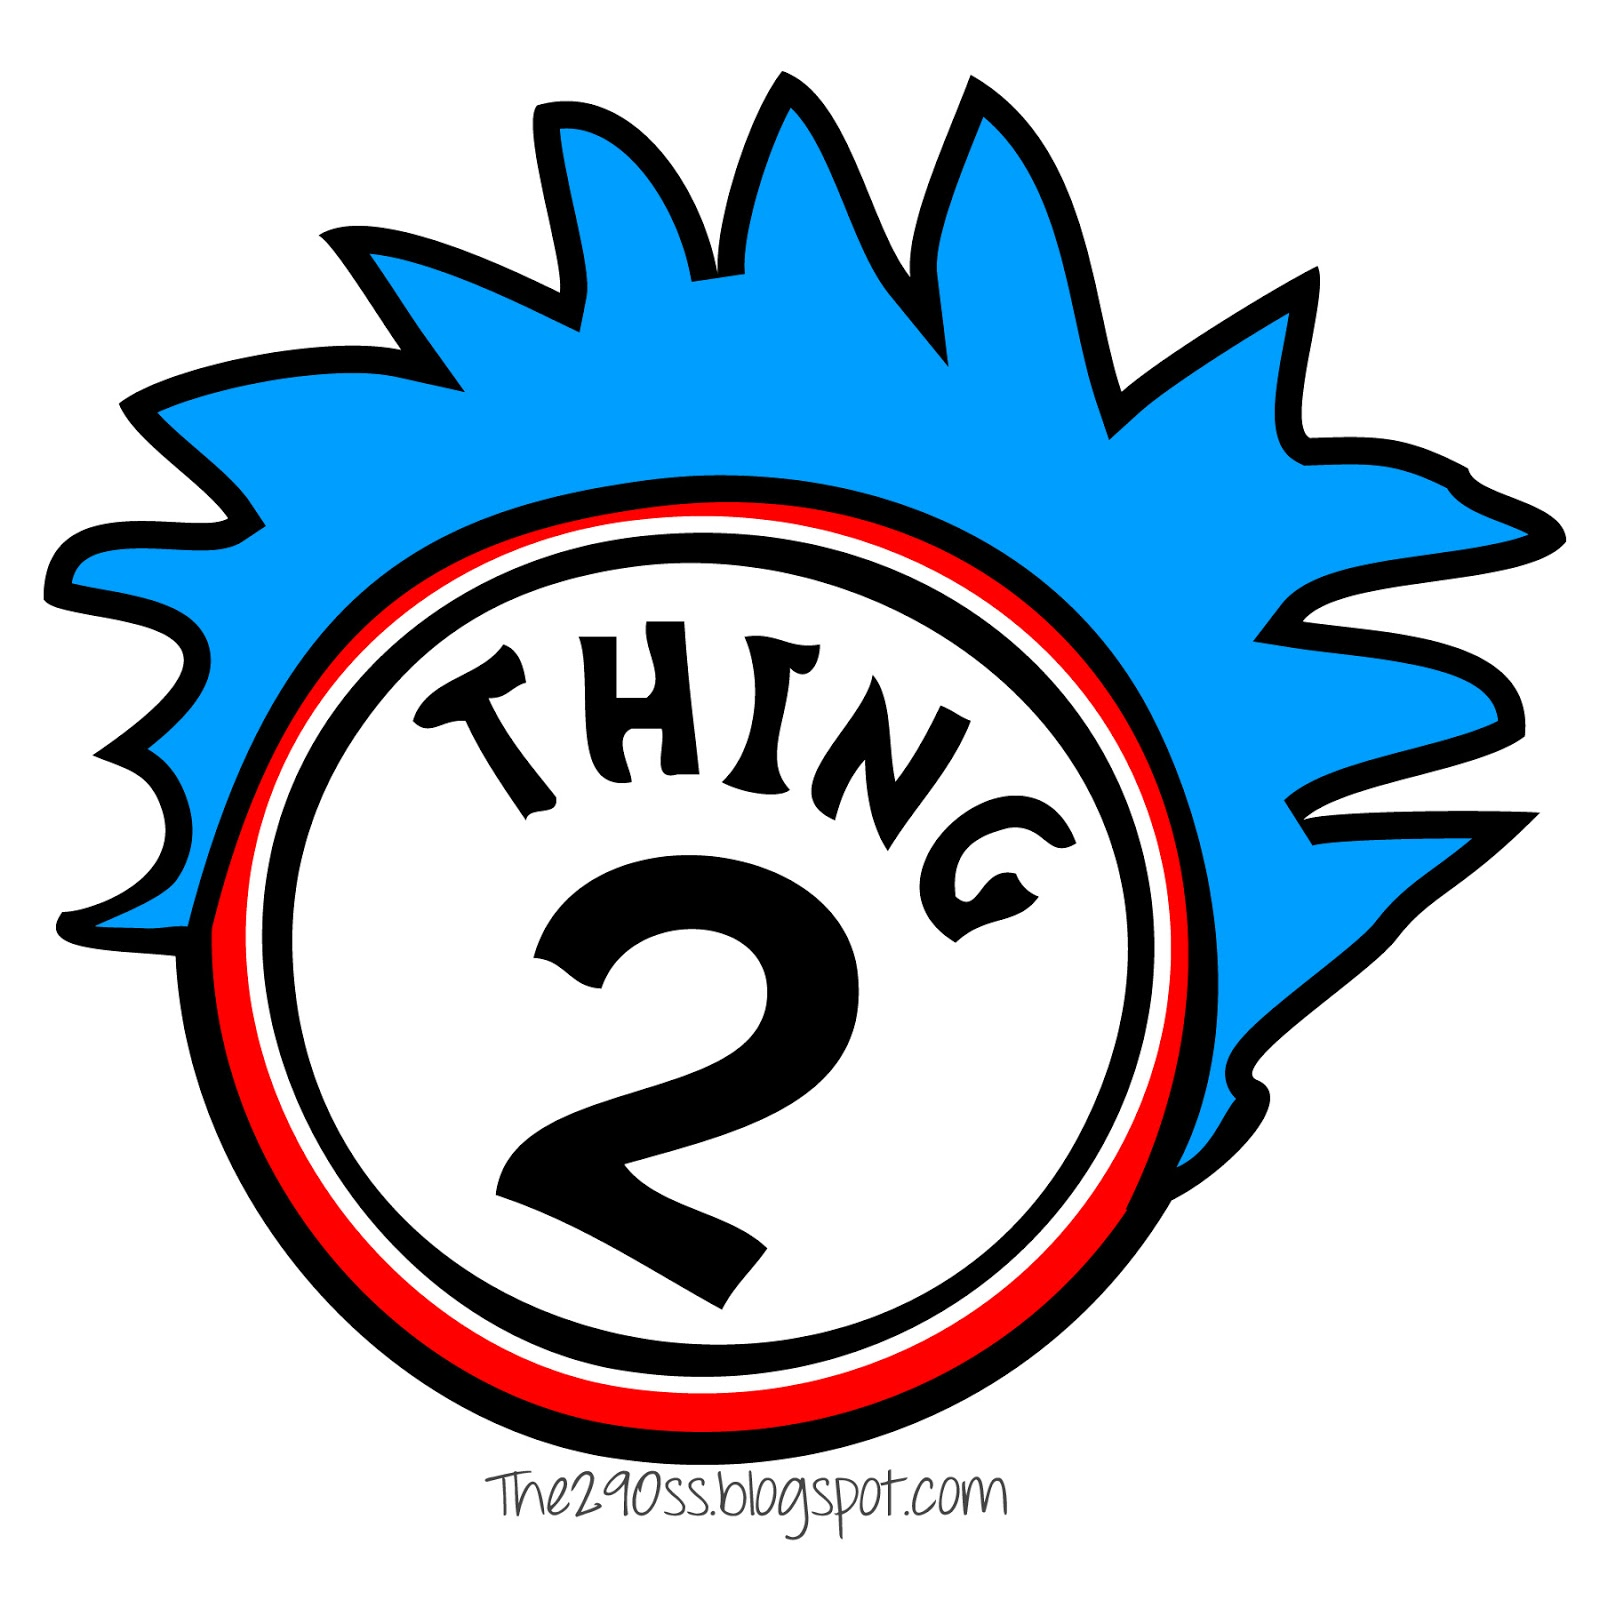 graphic relating to Thing 1 and Thing 2 Printable titled Point 1 And Detail 2 Printable Images Totally free down load excellent